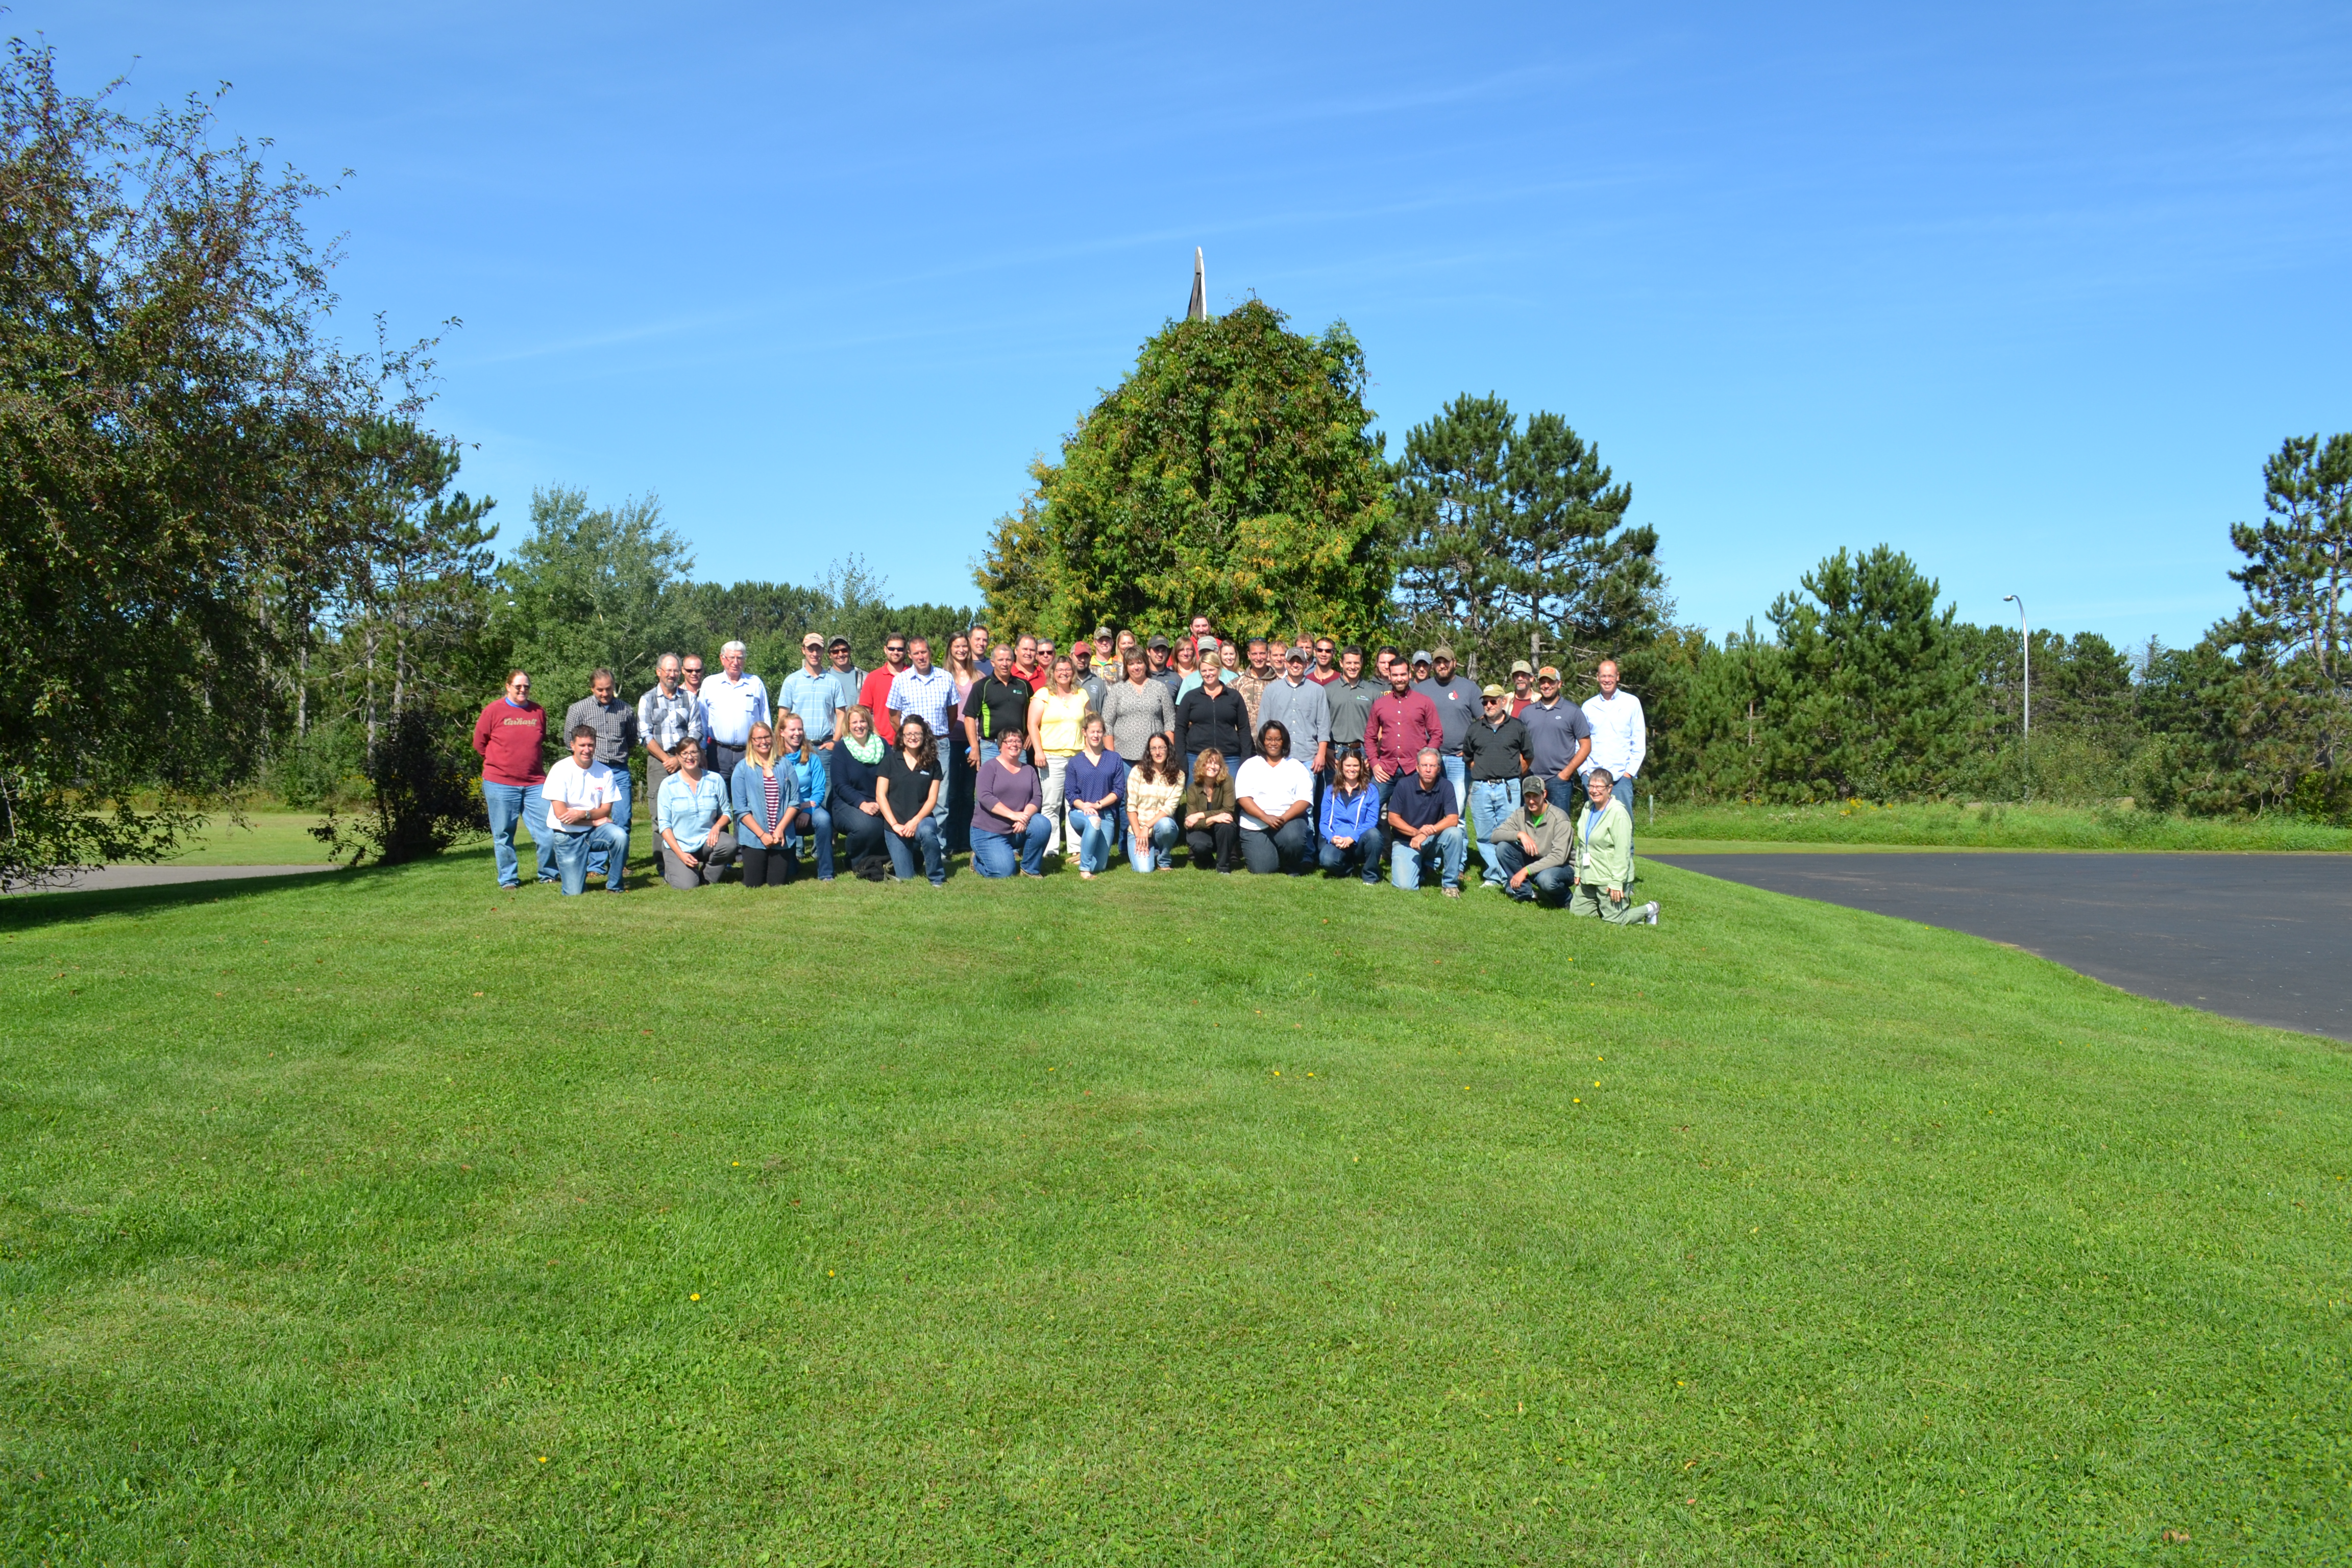 The 2016 MN NRCS Basic Conservation Planning Course was held on August 23rd through the 26th in Hinckley MN